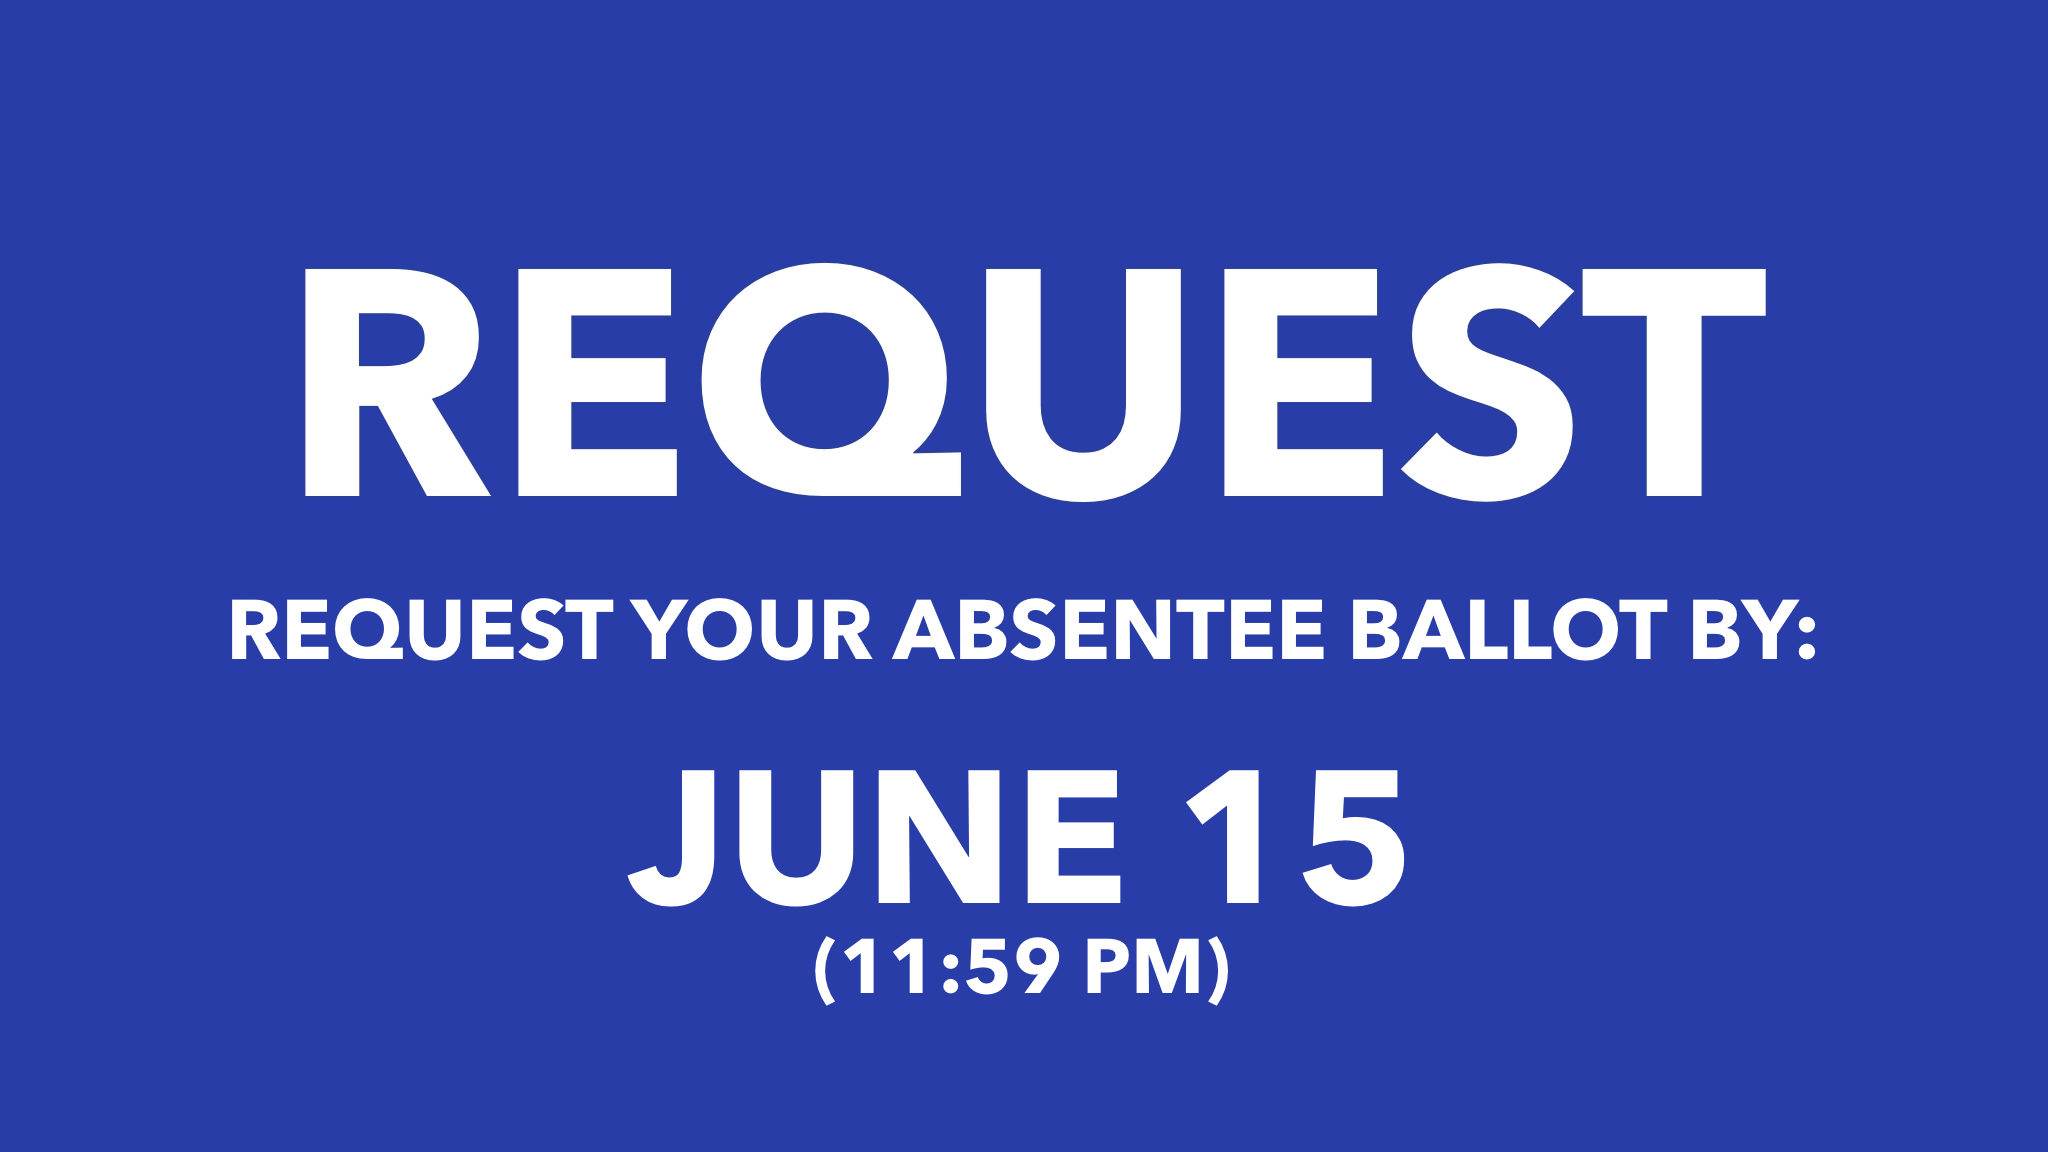 Request your Absentee Ballot by June 15 (11:59 PM)